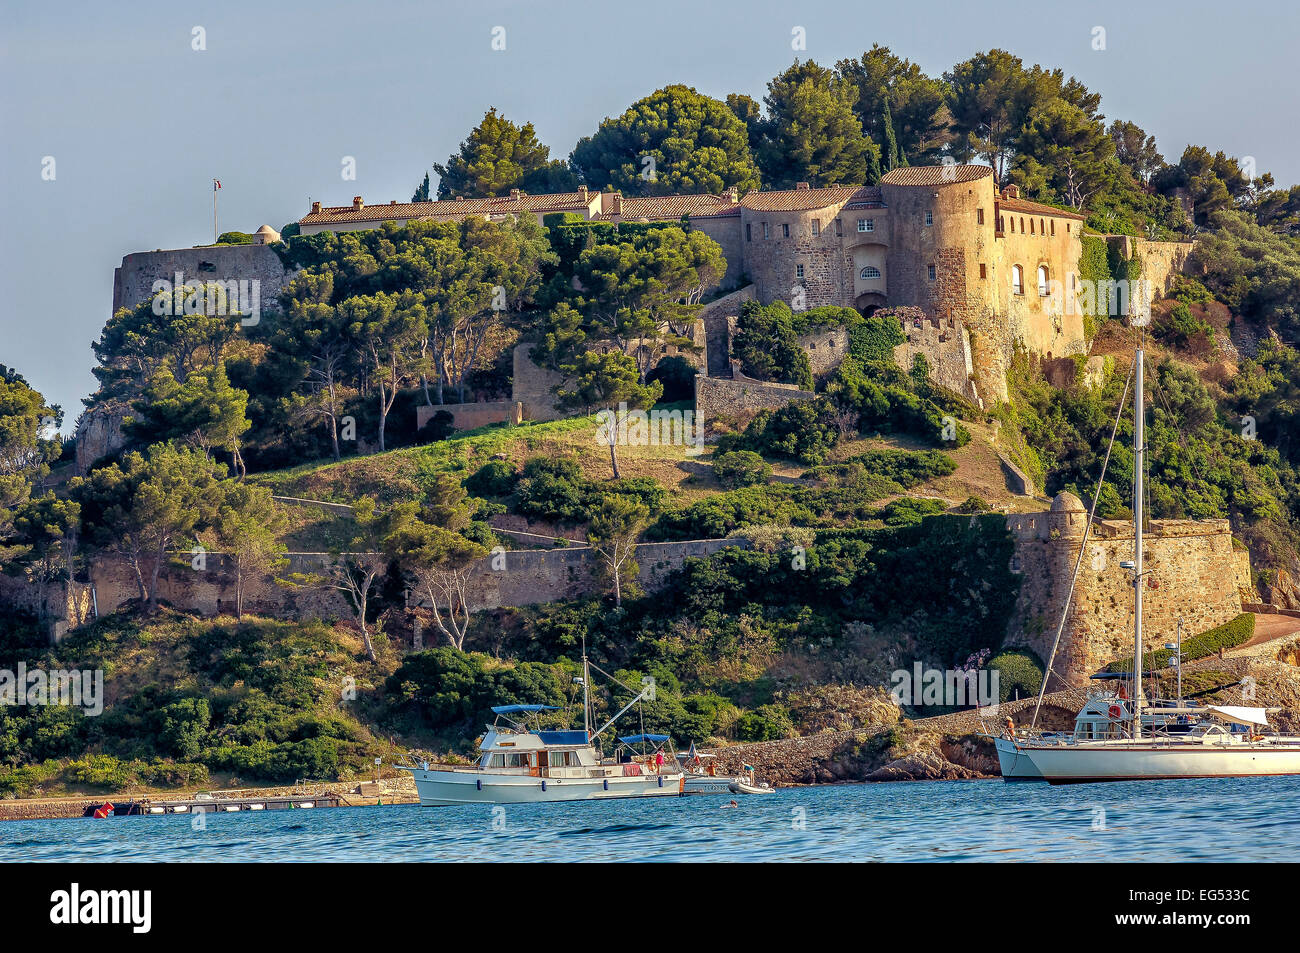 Fort de br gan on bormes les mimosas 83 stock photo - Office de tourisme de bormes les mimosas ...